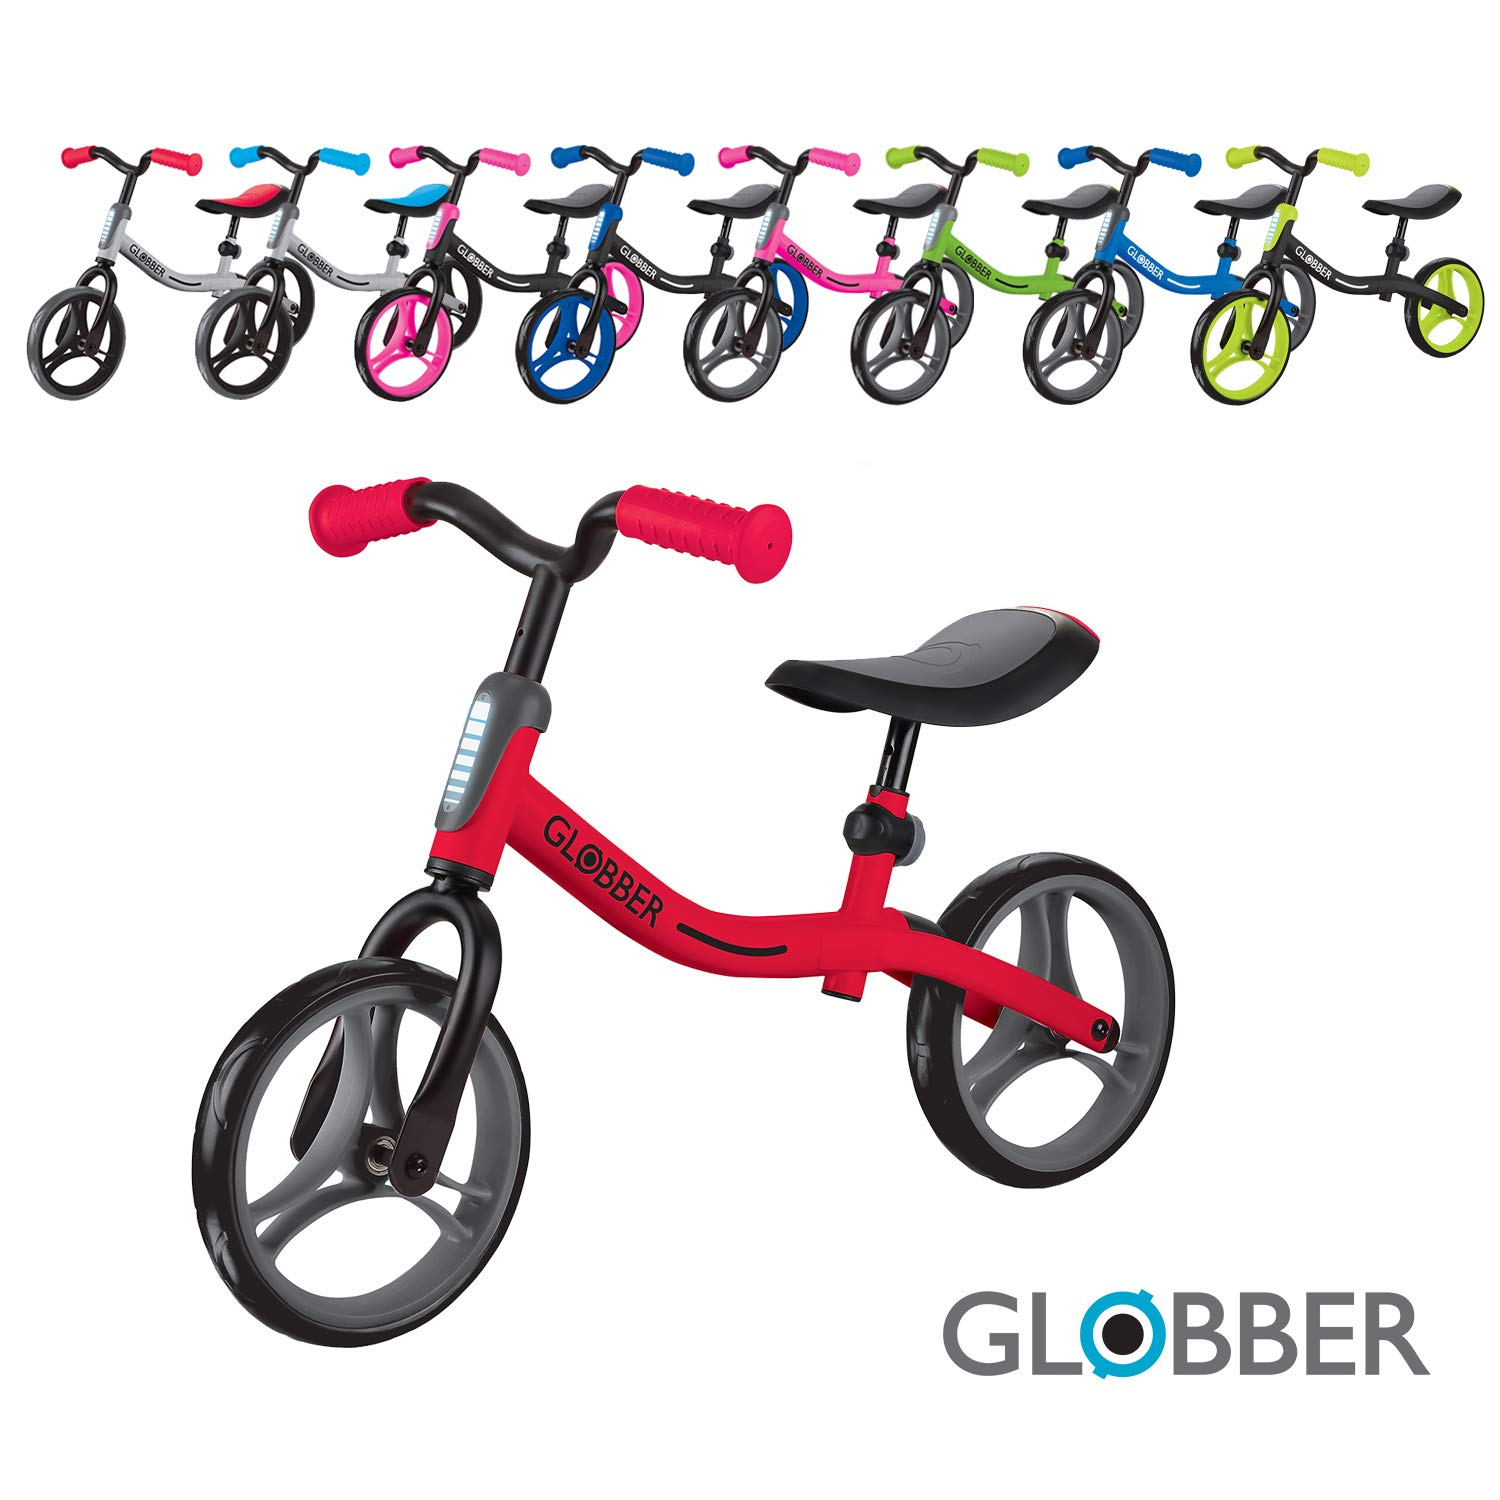 Toddler Bike Teaches Essential Motor Skills and Balance Before transitioning to Their First Pedal Bike Adjustable Balance Bike for First-timers Globber GO Bike Compact